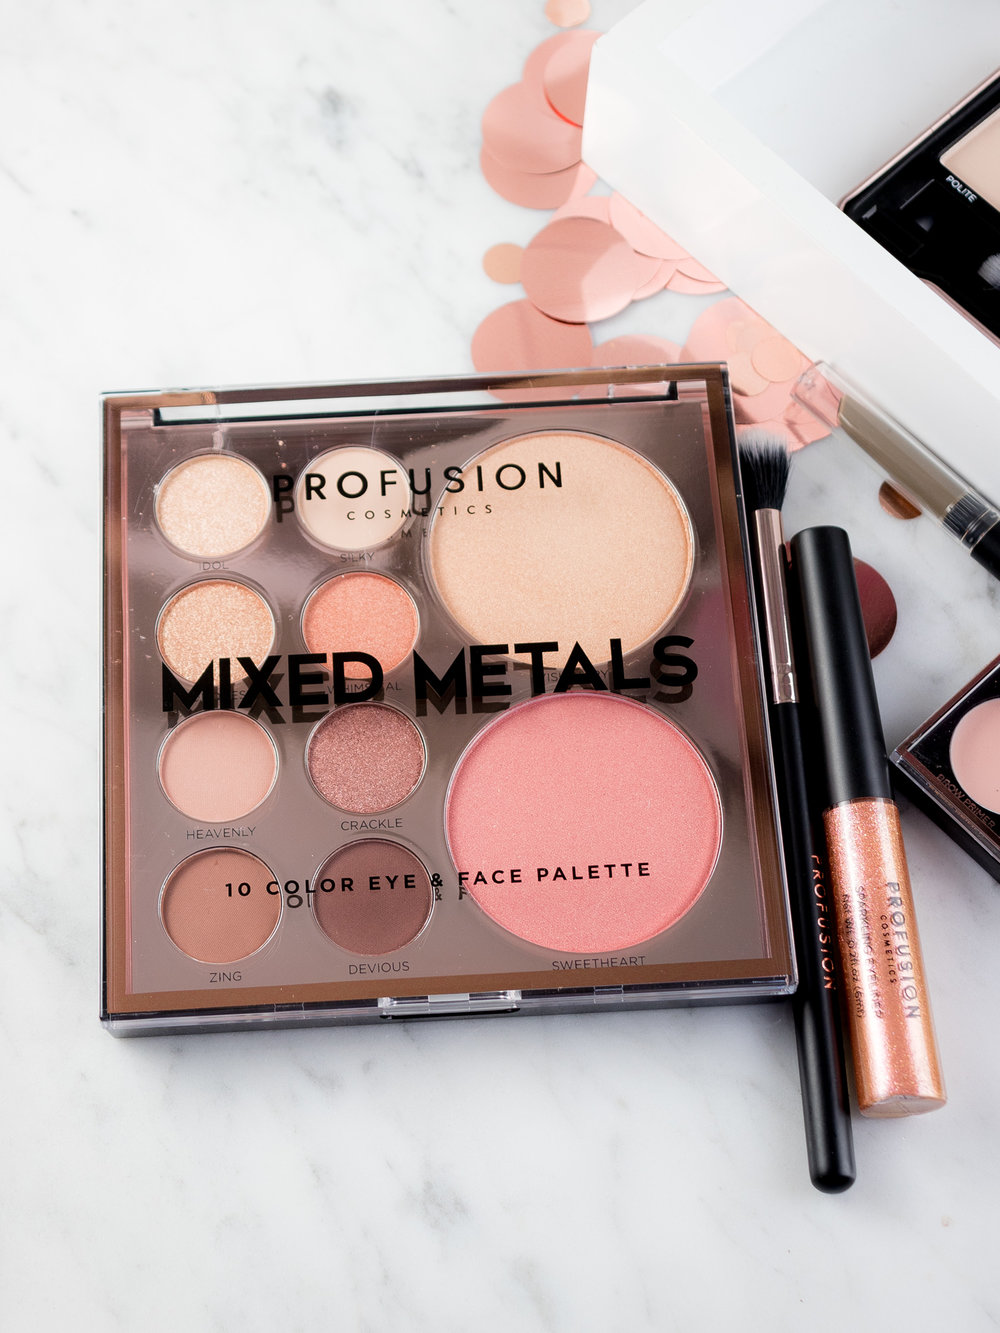 Profusion Cosmetics Holiday Collection 2018